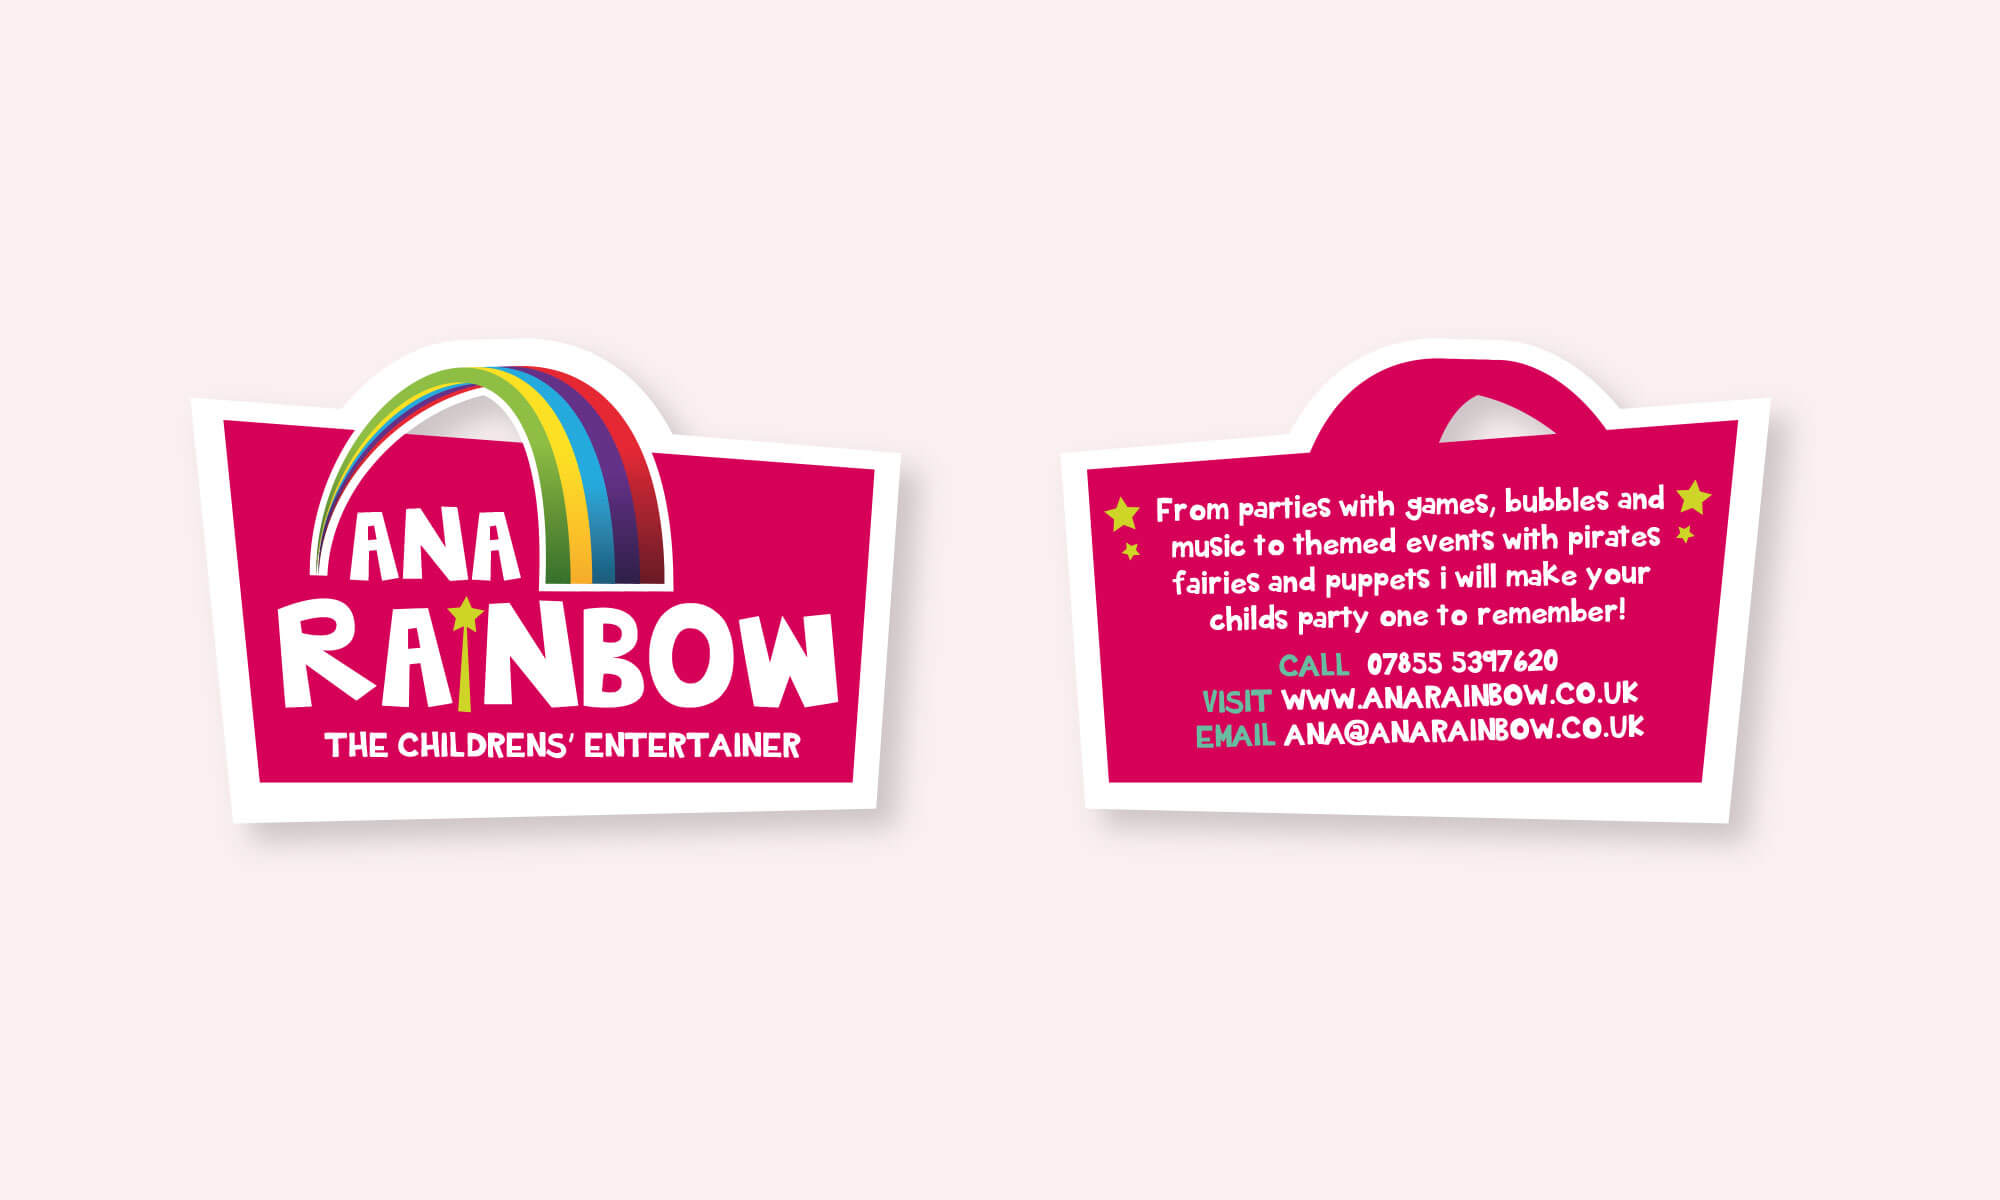 Ana Rainbow logo business card